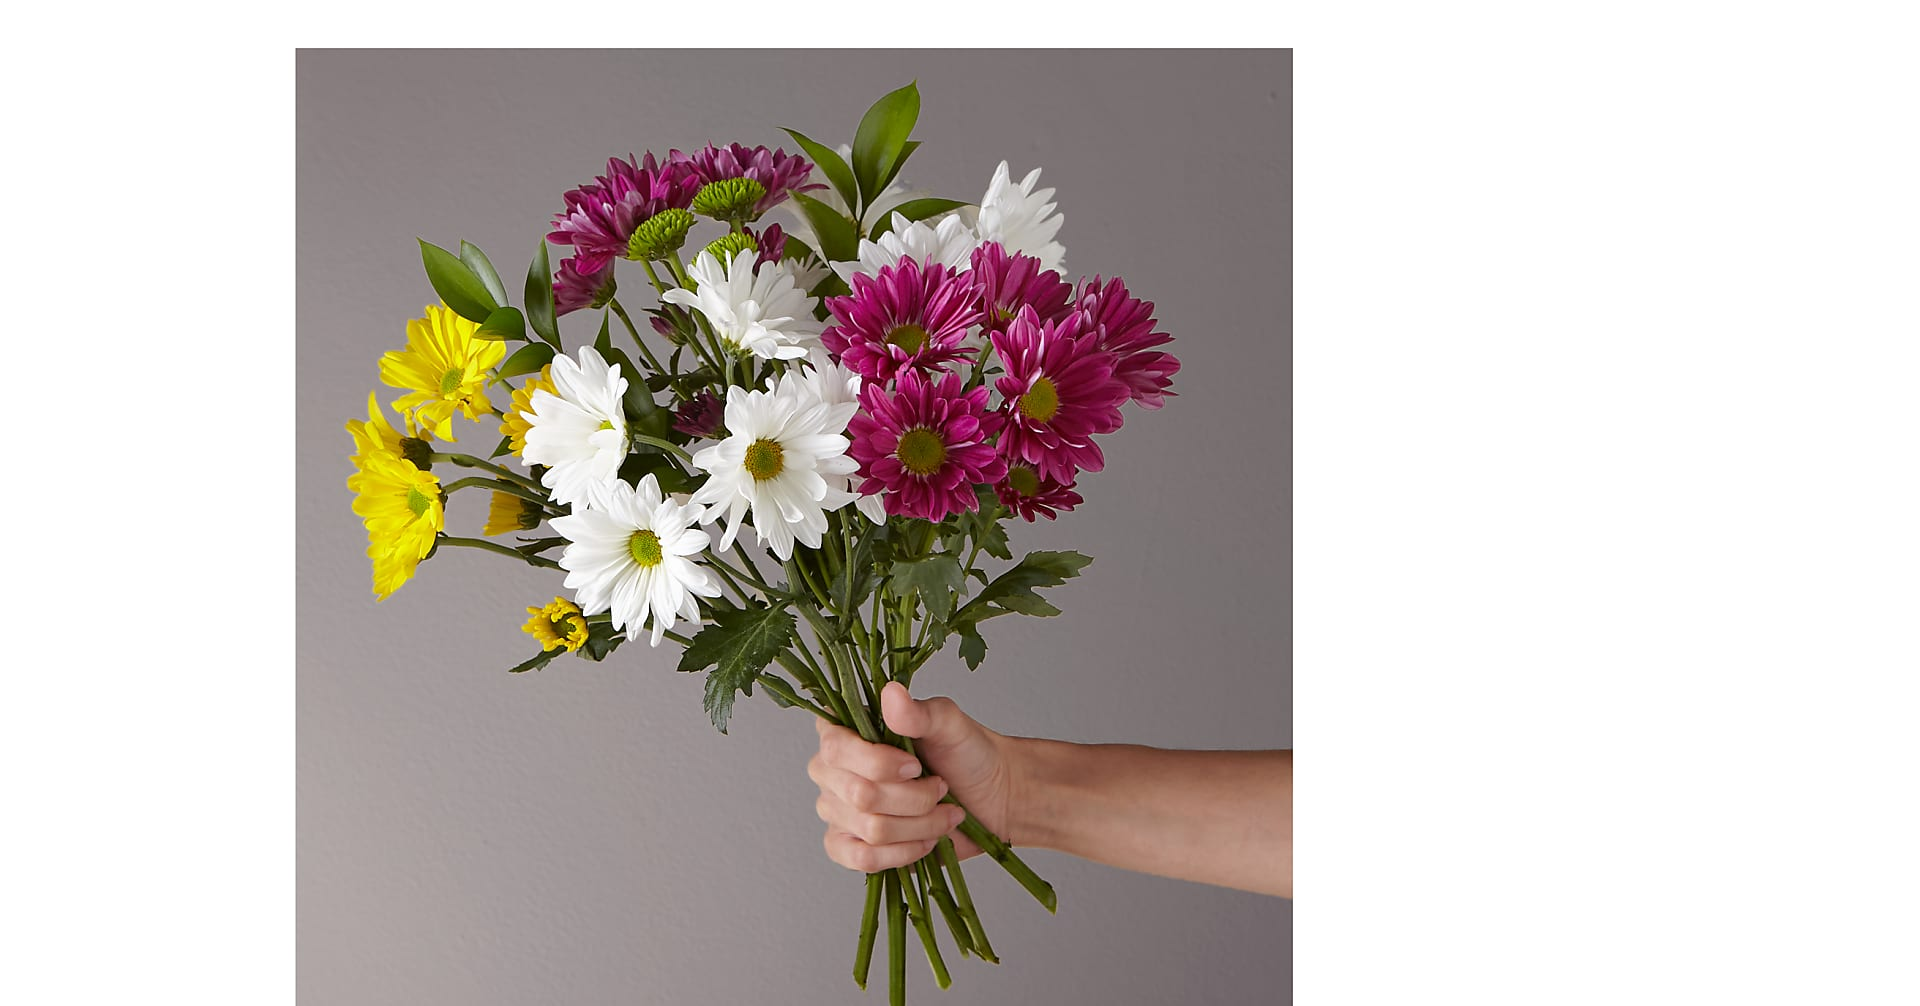 Picnic Party Daisy Bouquet - Image 1 Of 2